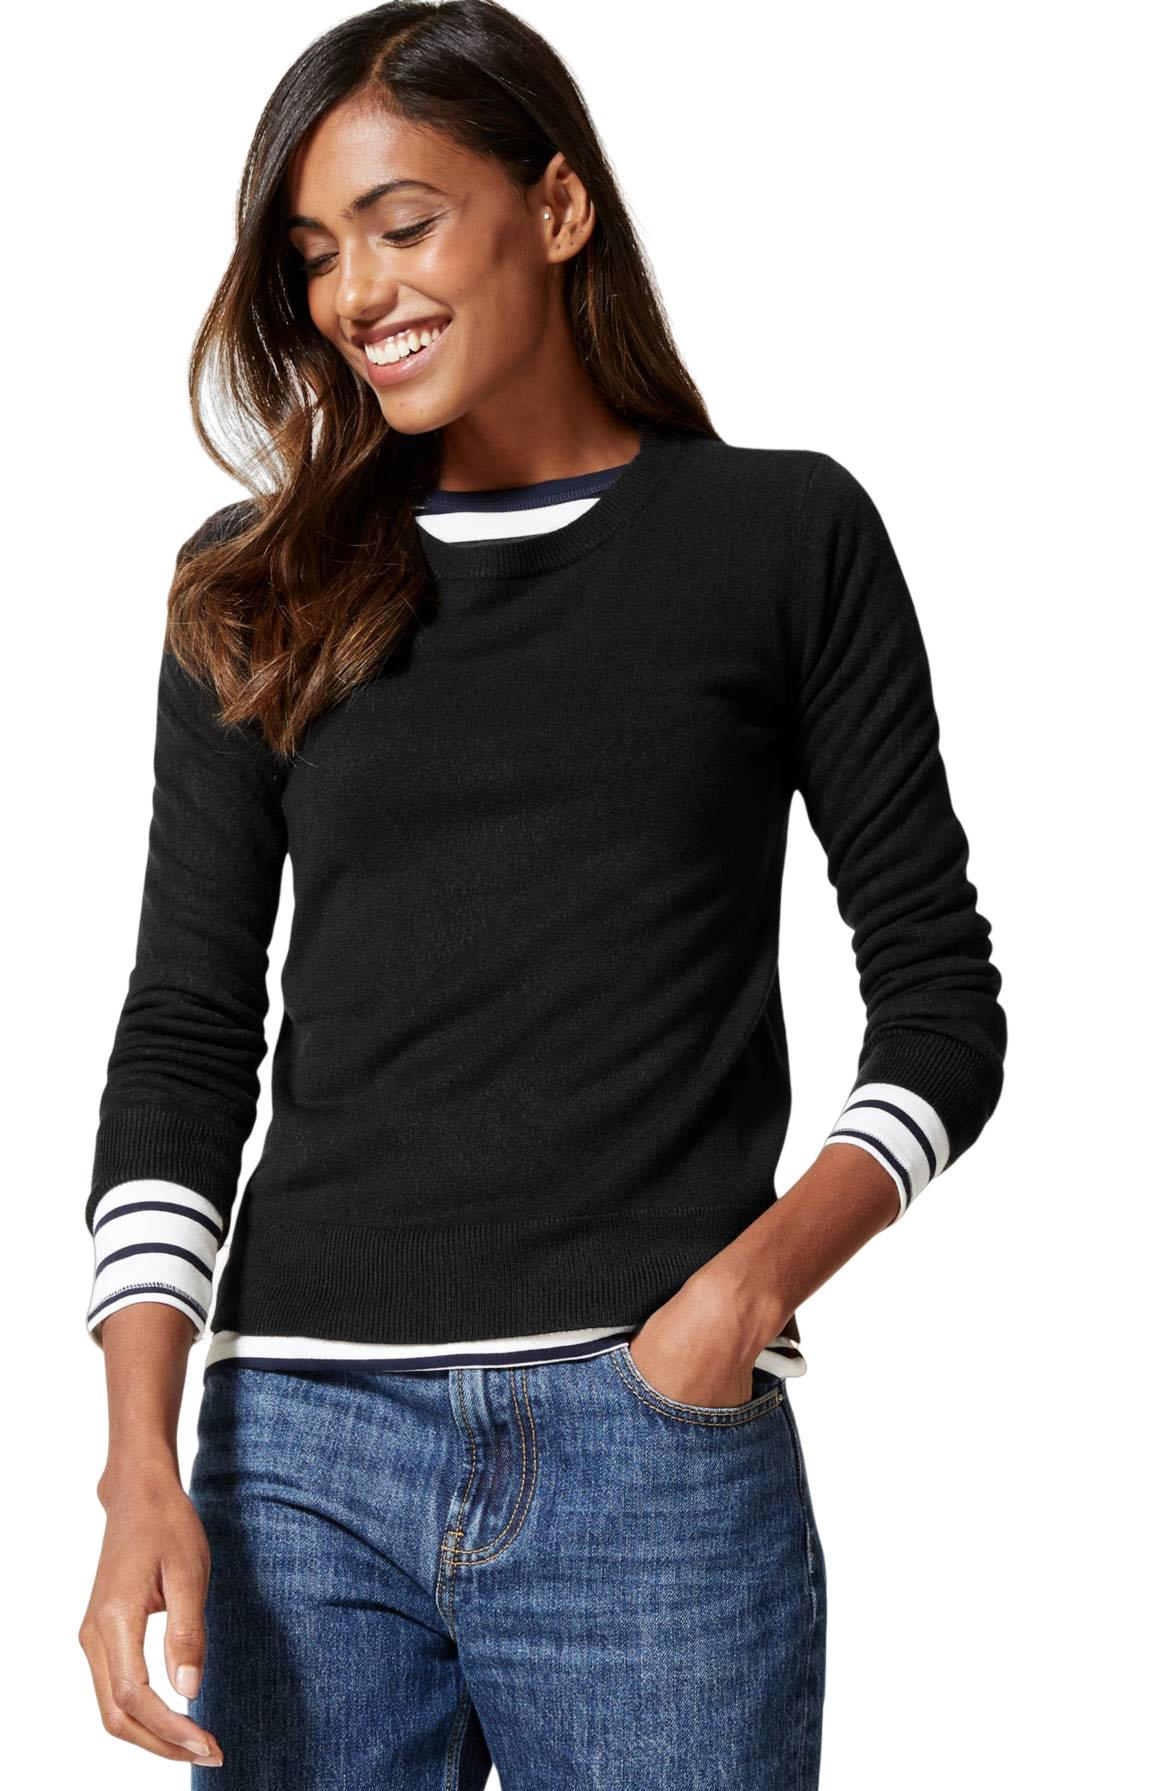 NEW-Ex-M-amp-S-Ladies-Super-Soft-Lightweight-Round-Neck-Summer-Jumper-Size-6-18 thumbnail 7